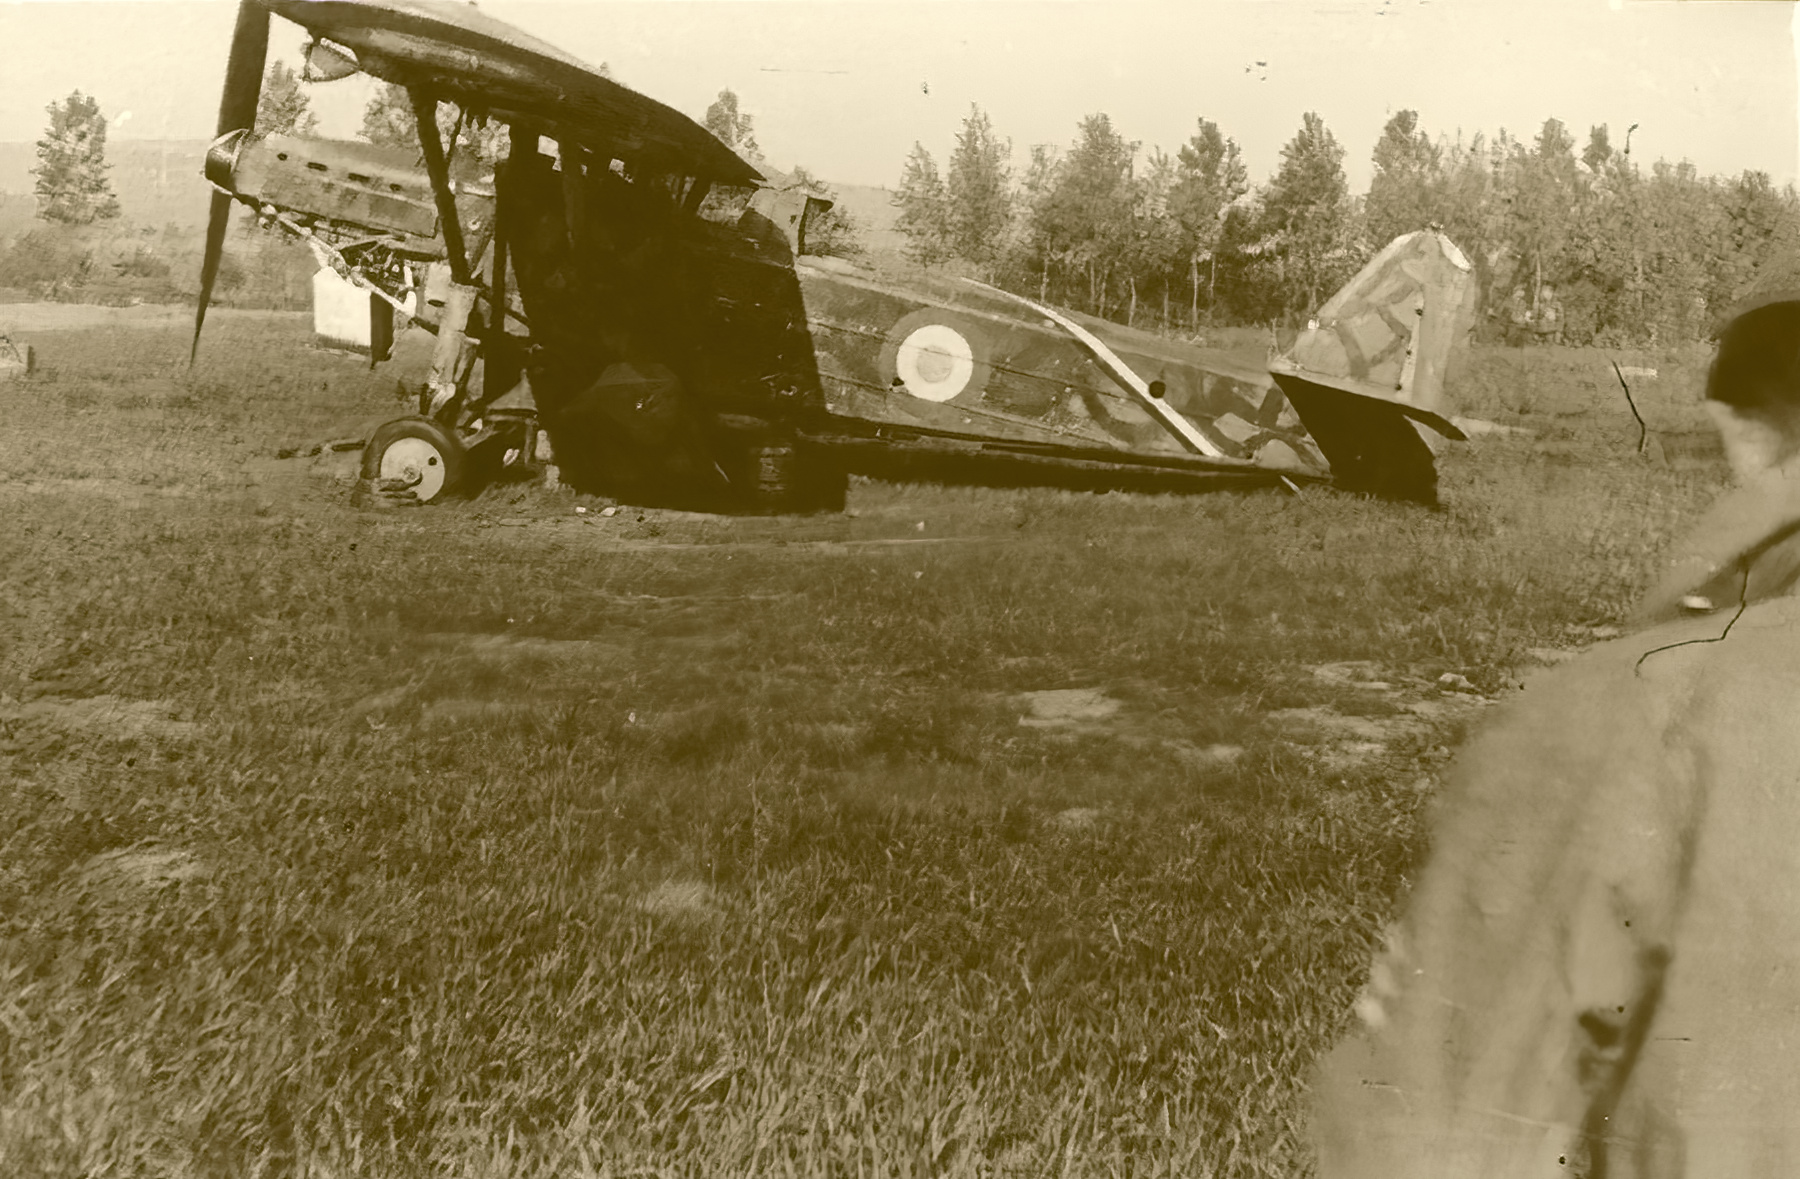 French Airforce ANF Les Mureaux 117 grounded at a French airbase France 1940 ebay 01